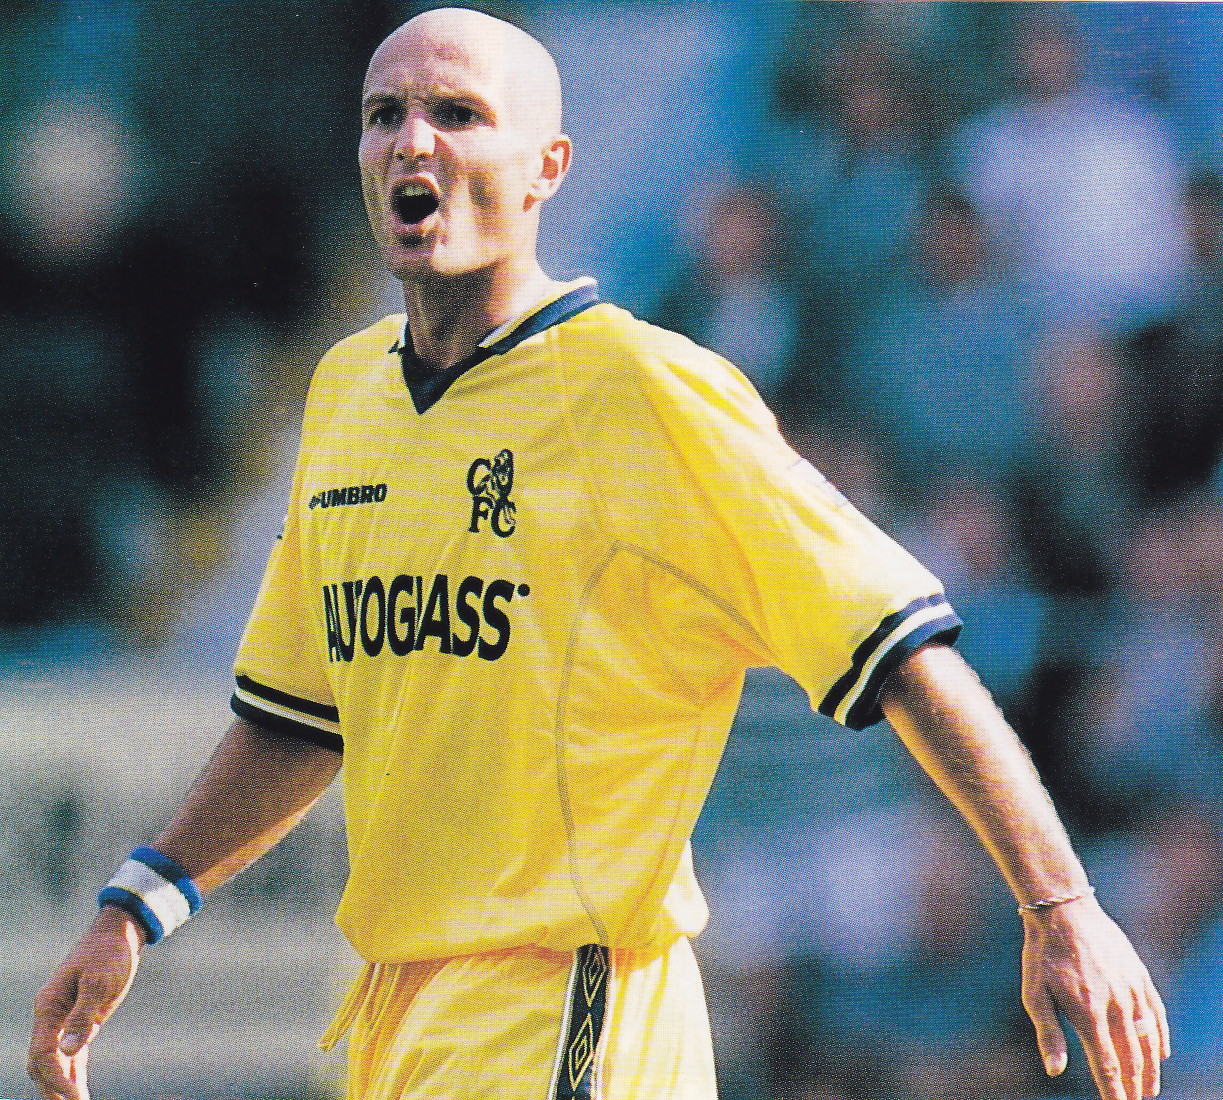 Chelsea-99-01-UMBRO-second-kit-yellow-yellow-yellow.jpg